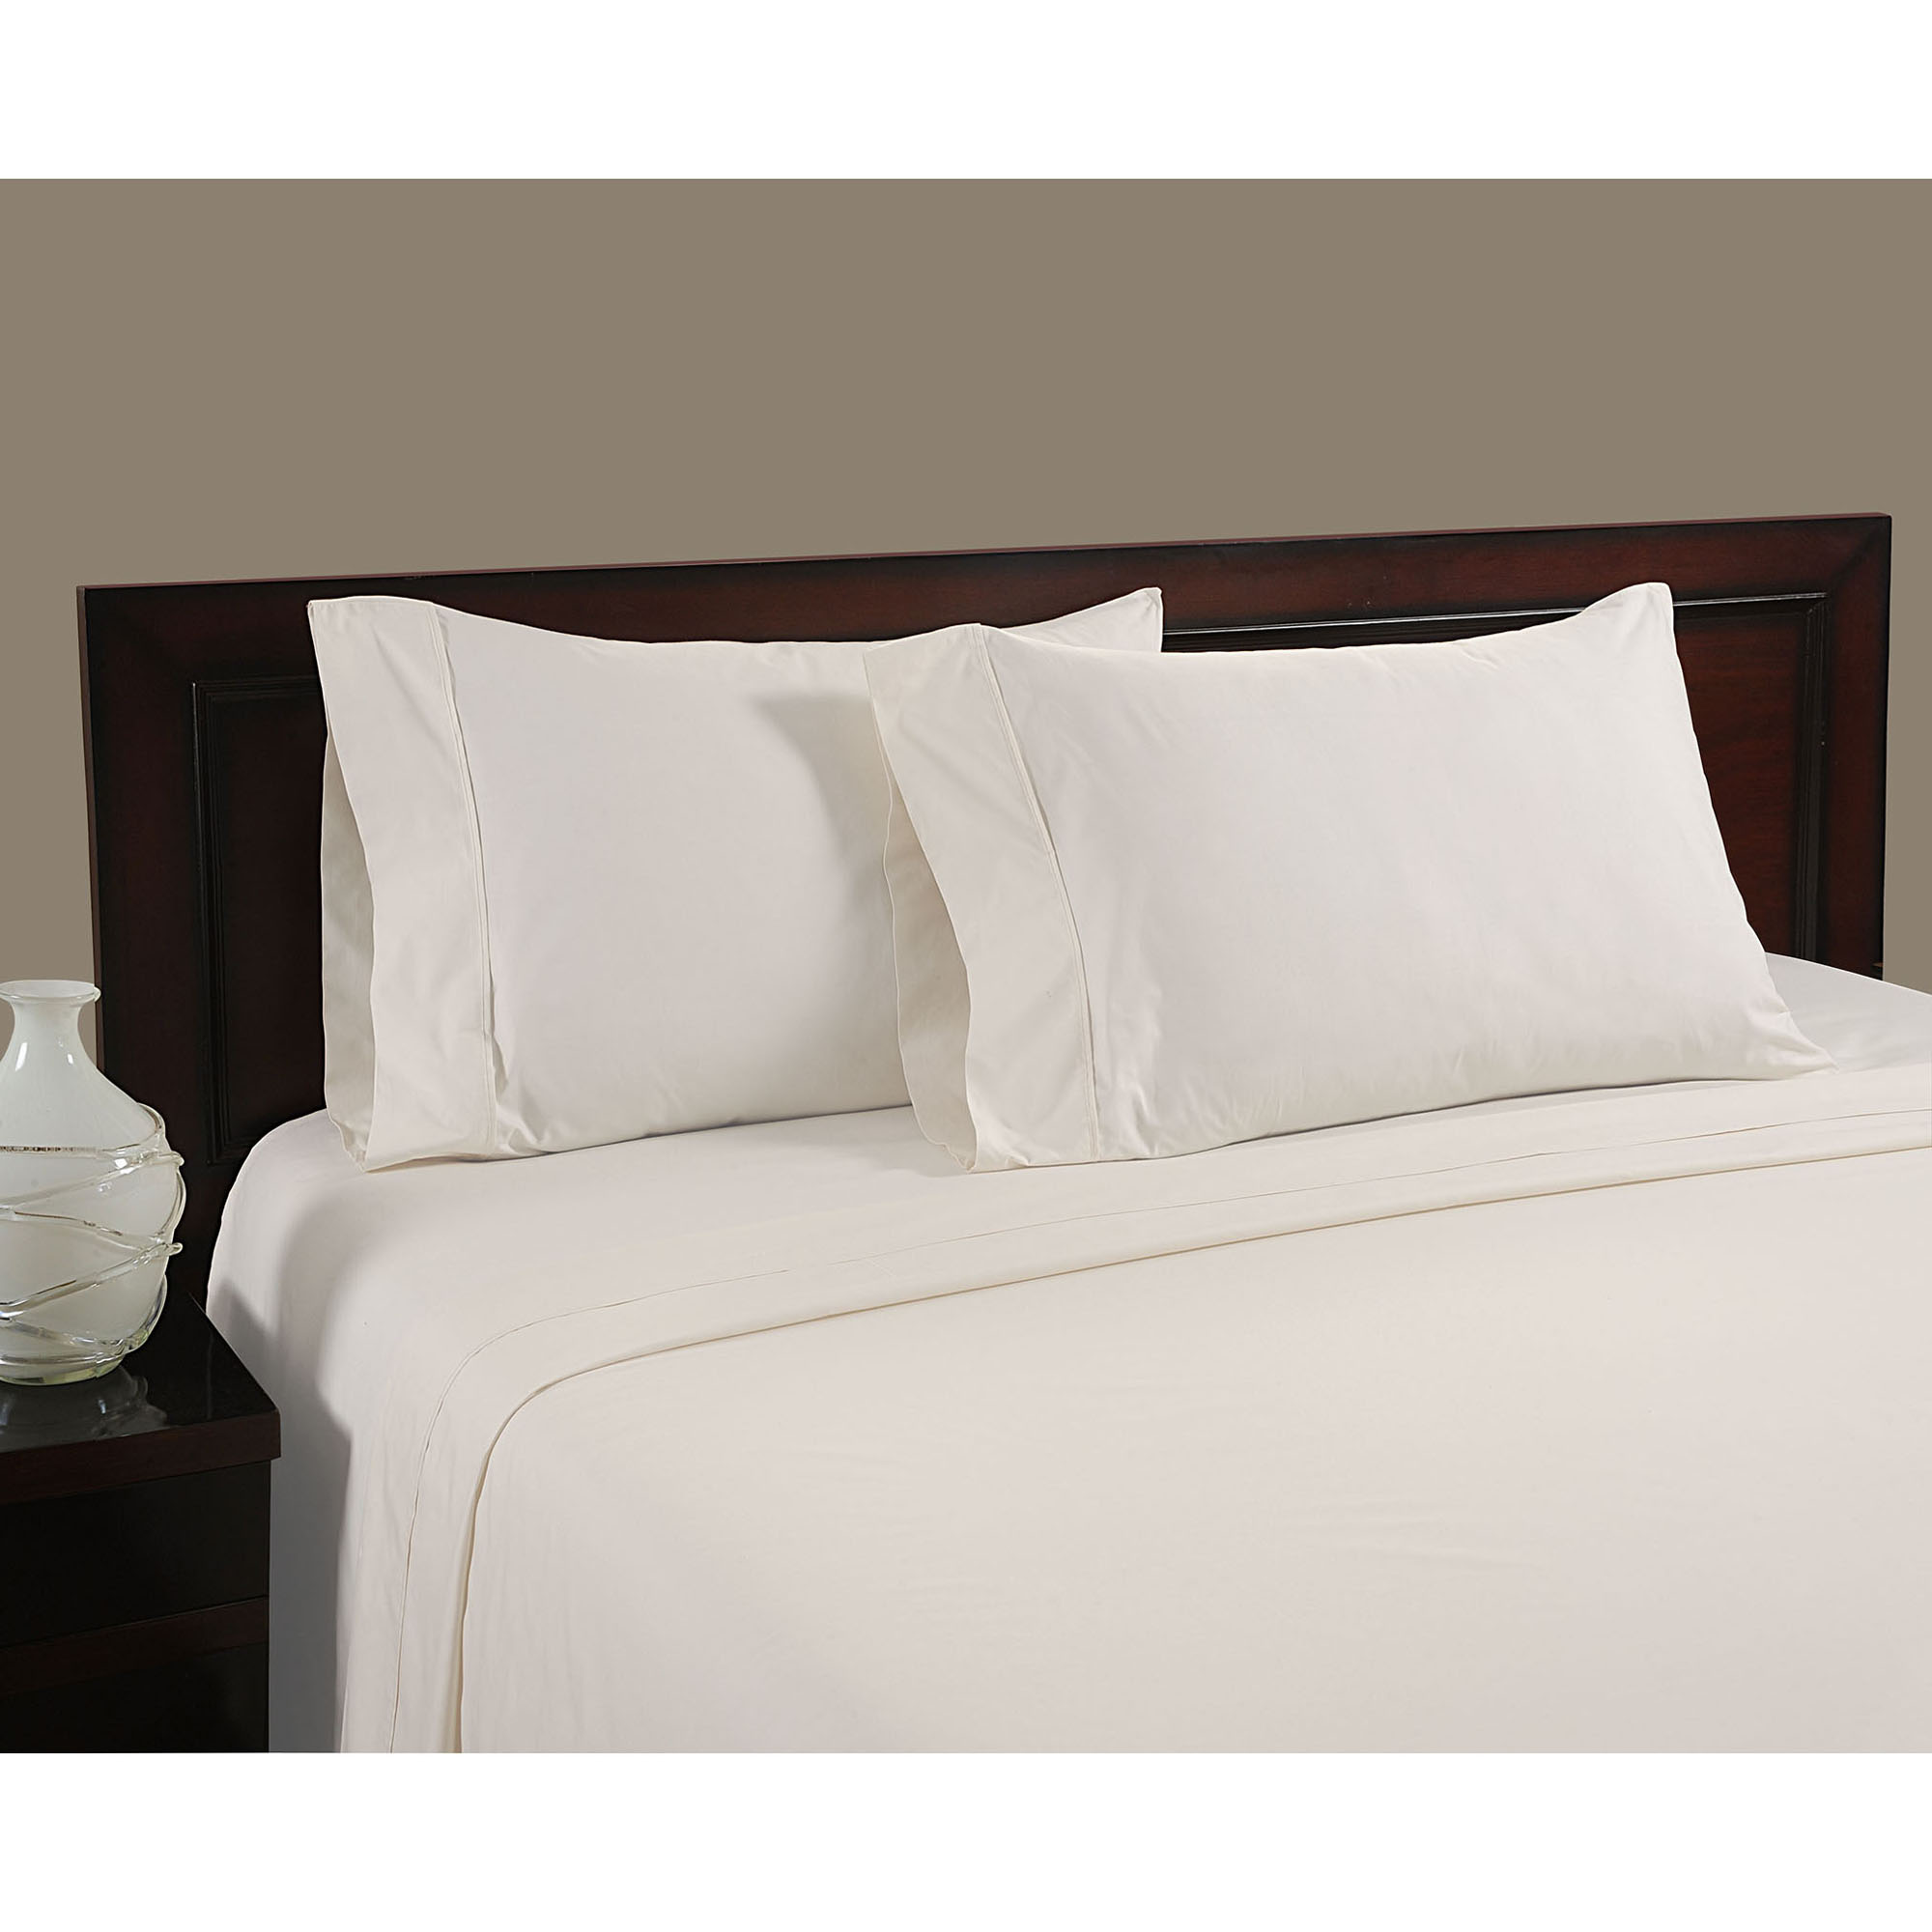 High thread count bed sheets - Color Sense Cool Touch 100 Percent Cotton 400 Thread Count Sheet Set